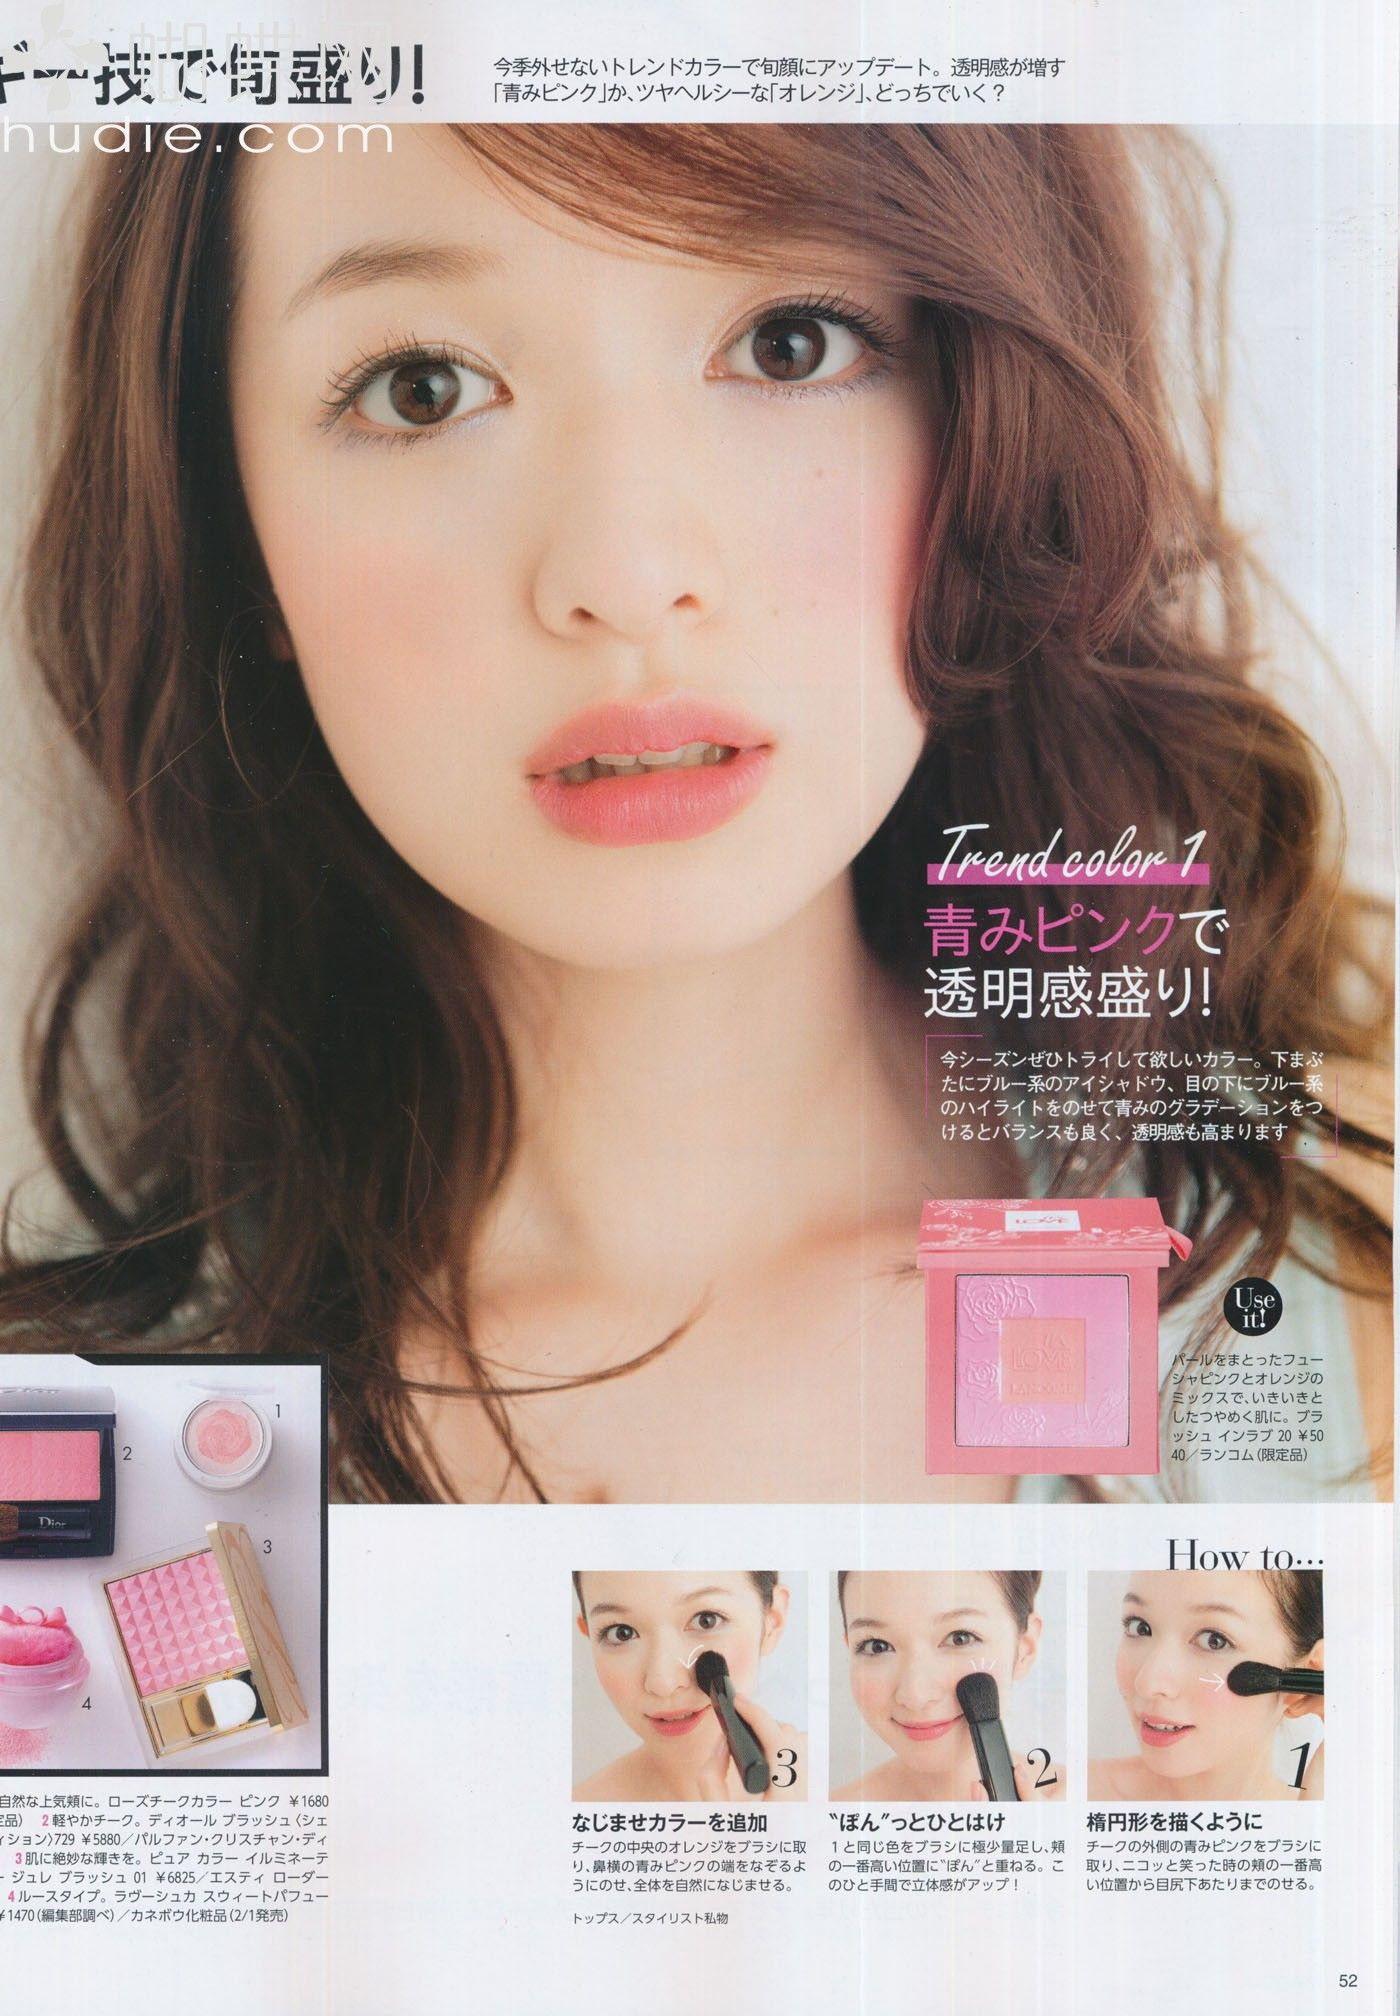 Japanese fresh makeup magazine. Reminds me of Anne